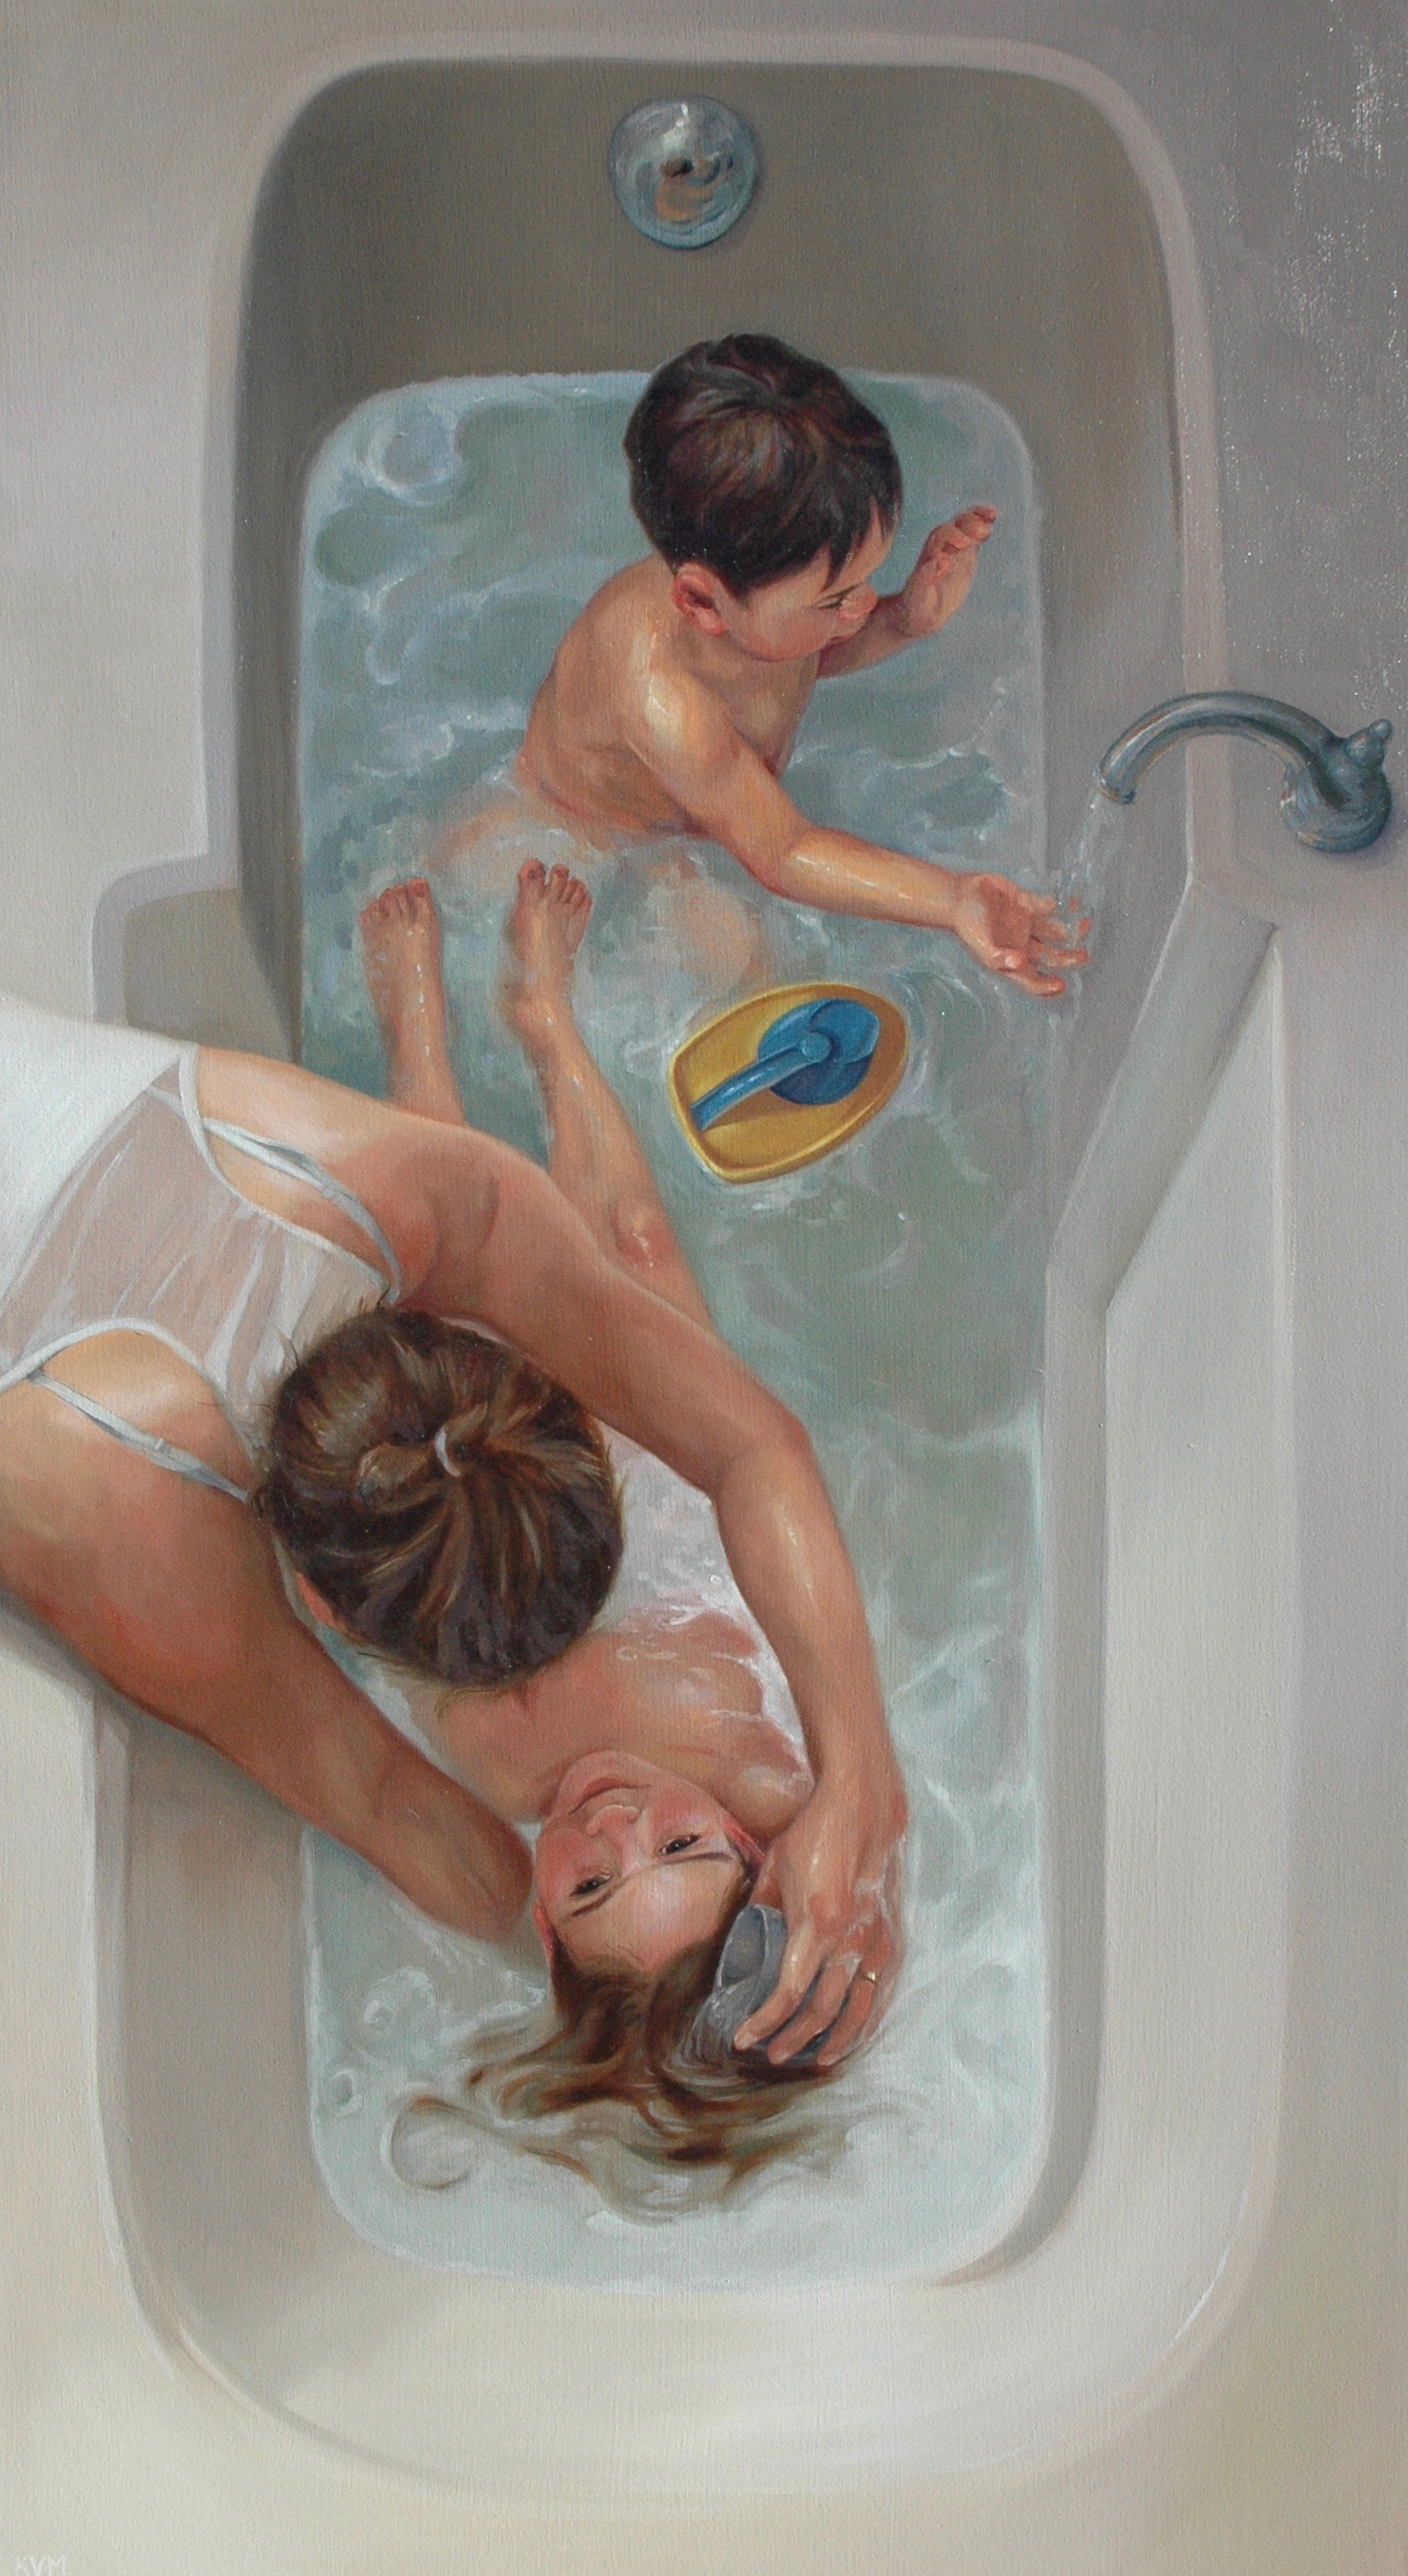 featured_artist-van_mourick-baptism-image_4